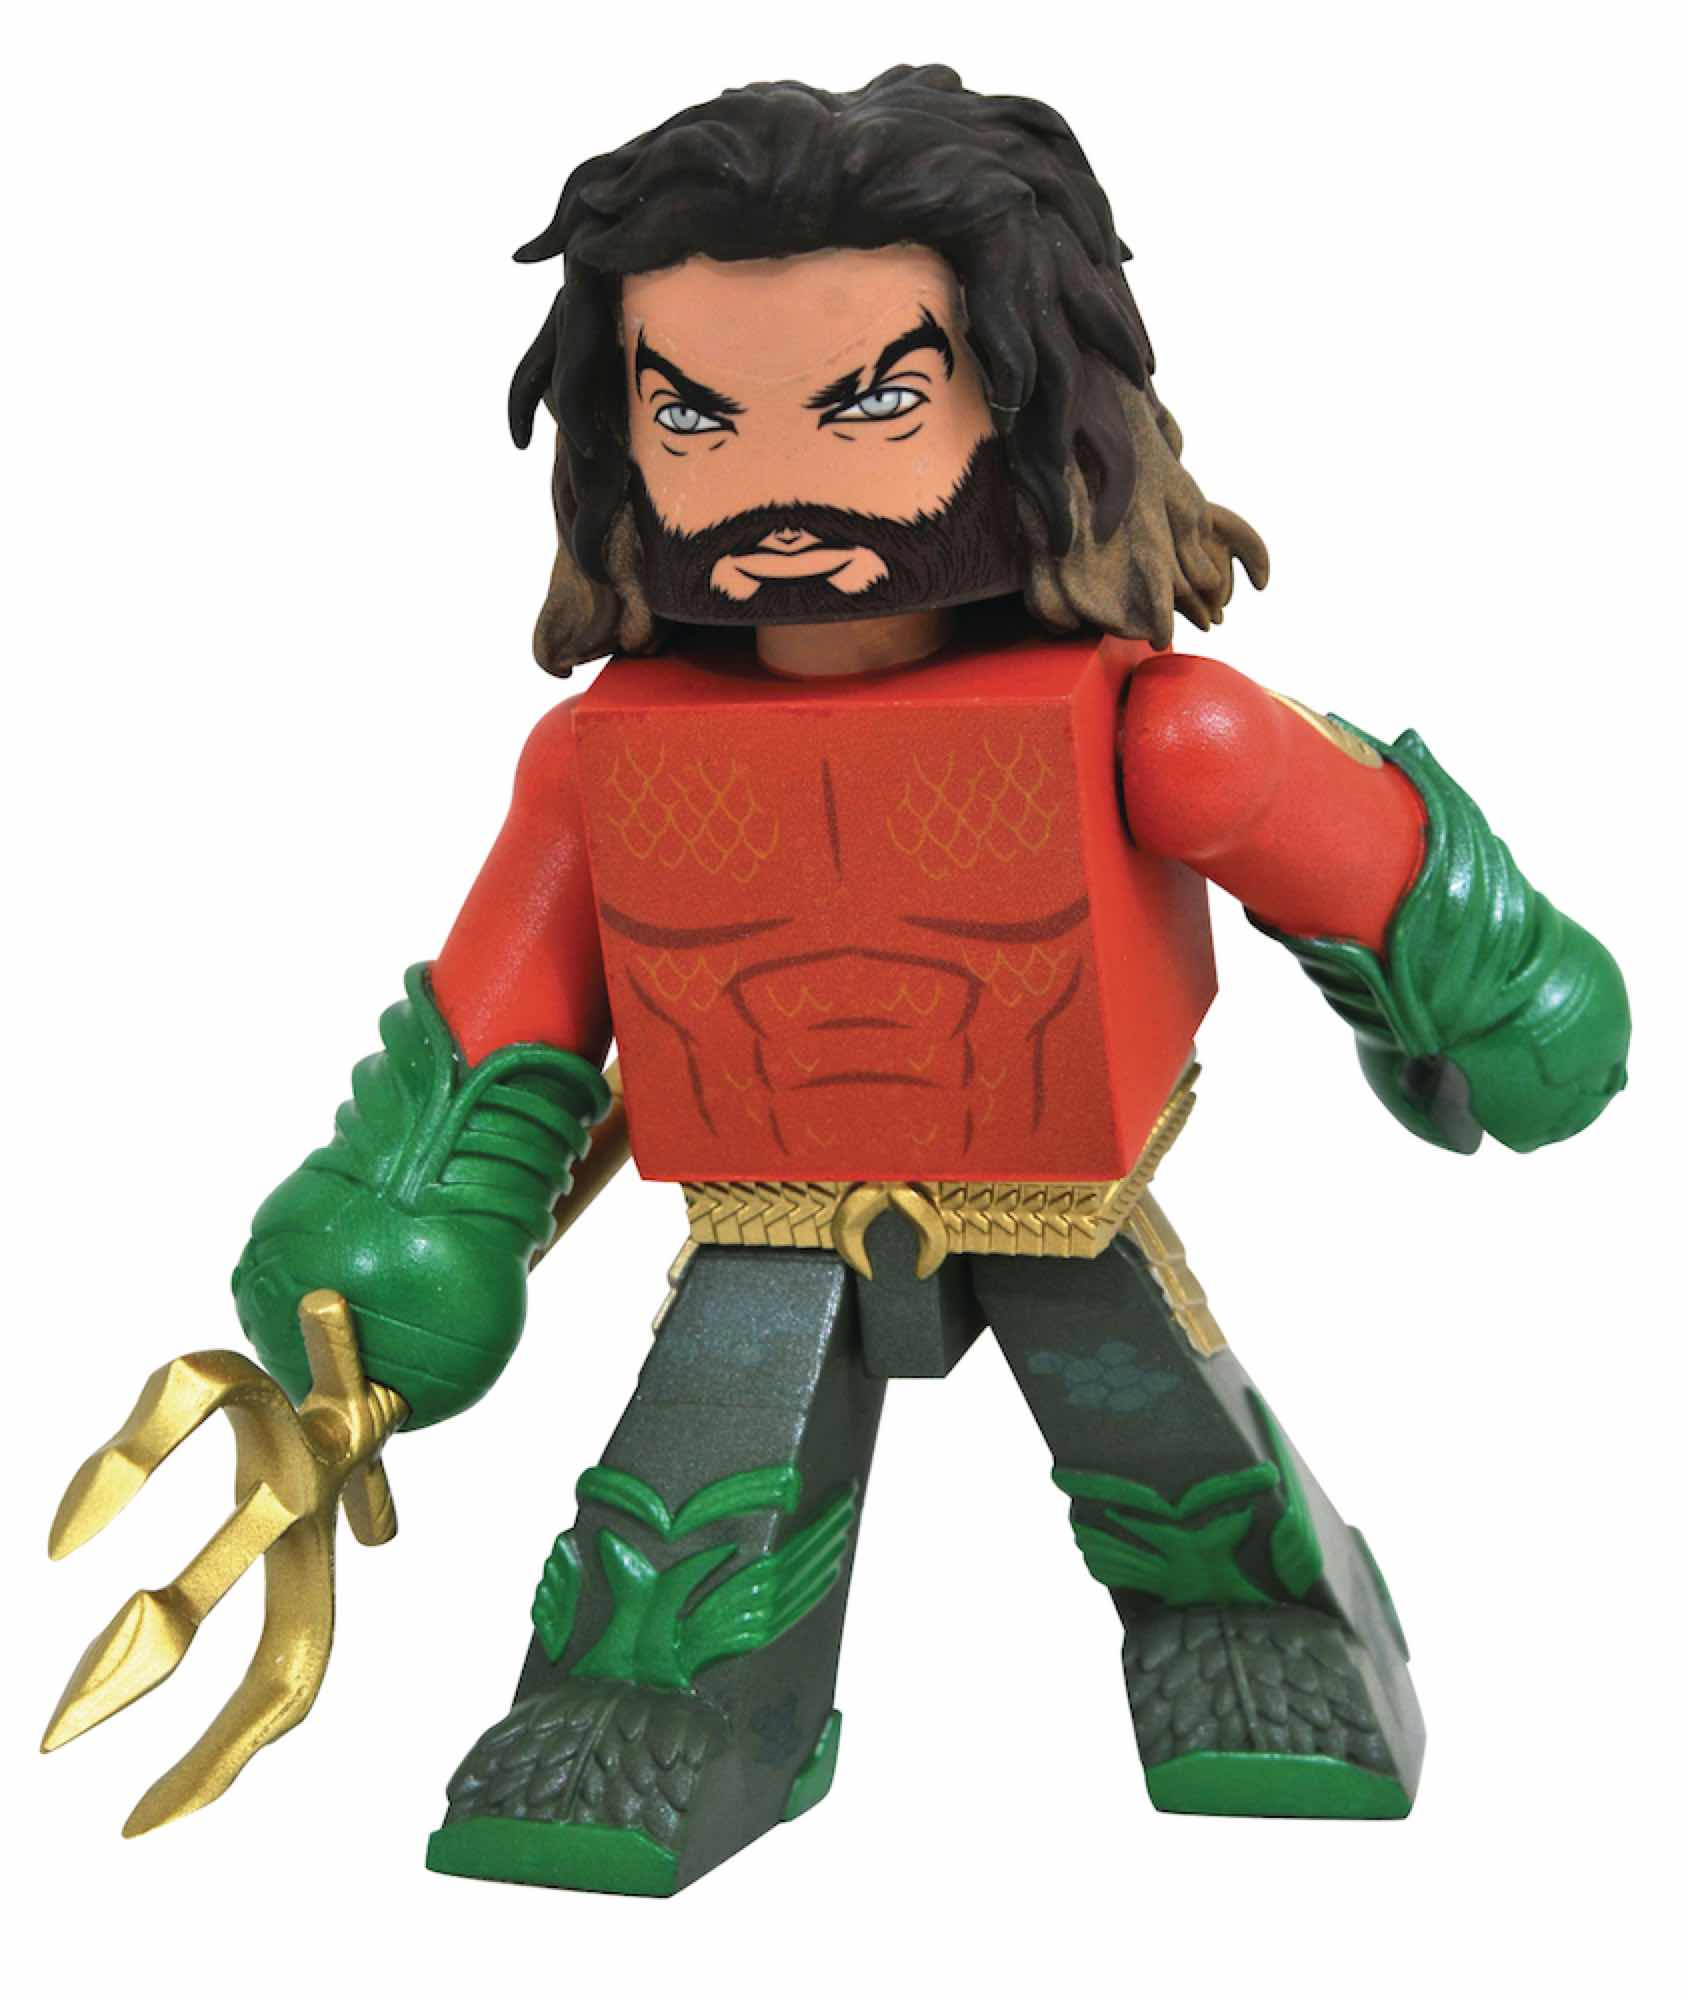 AQUAMAN FIGURA 10 CM DC MOVIE VINIMATES AQUAMAN